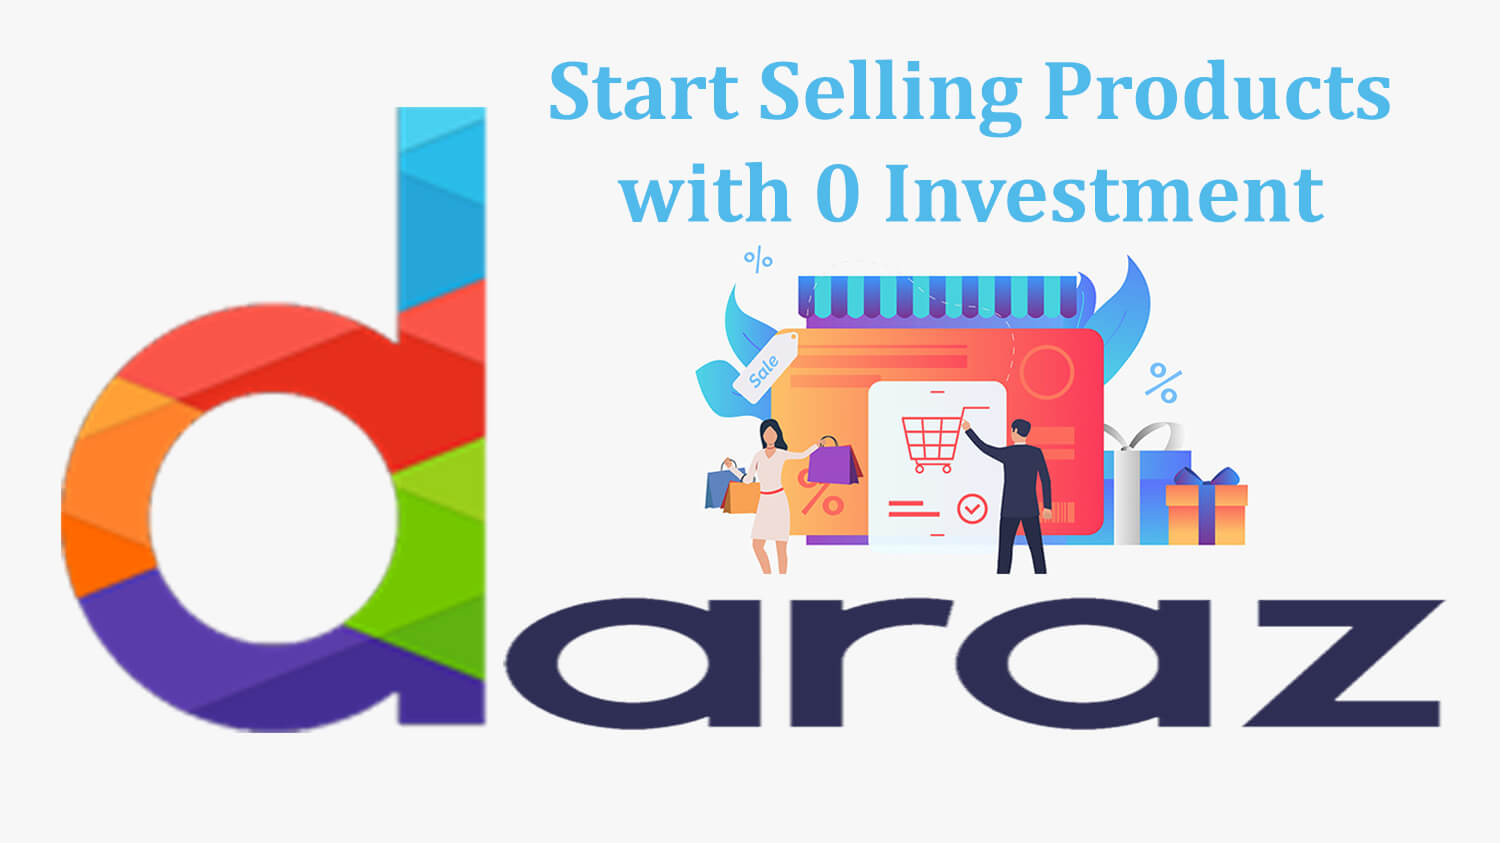 Start With 0 Investment on Daraz